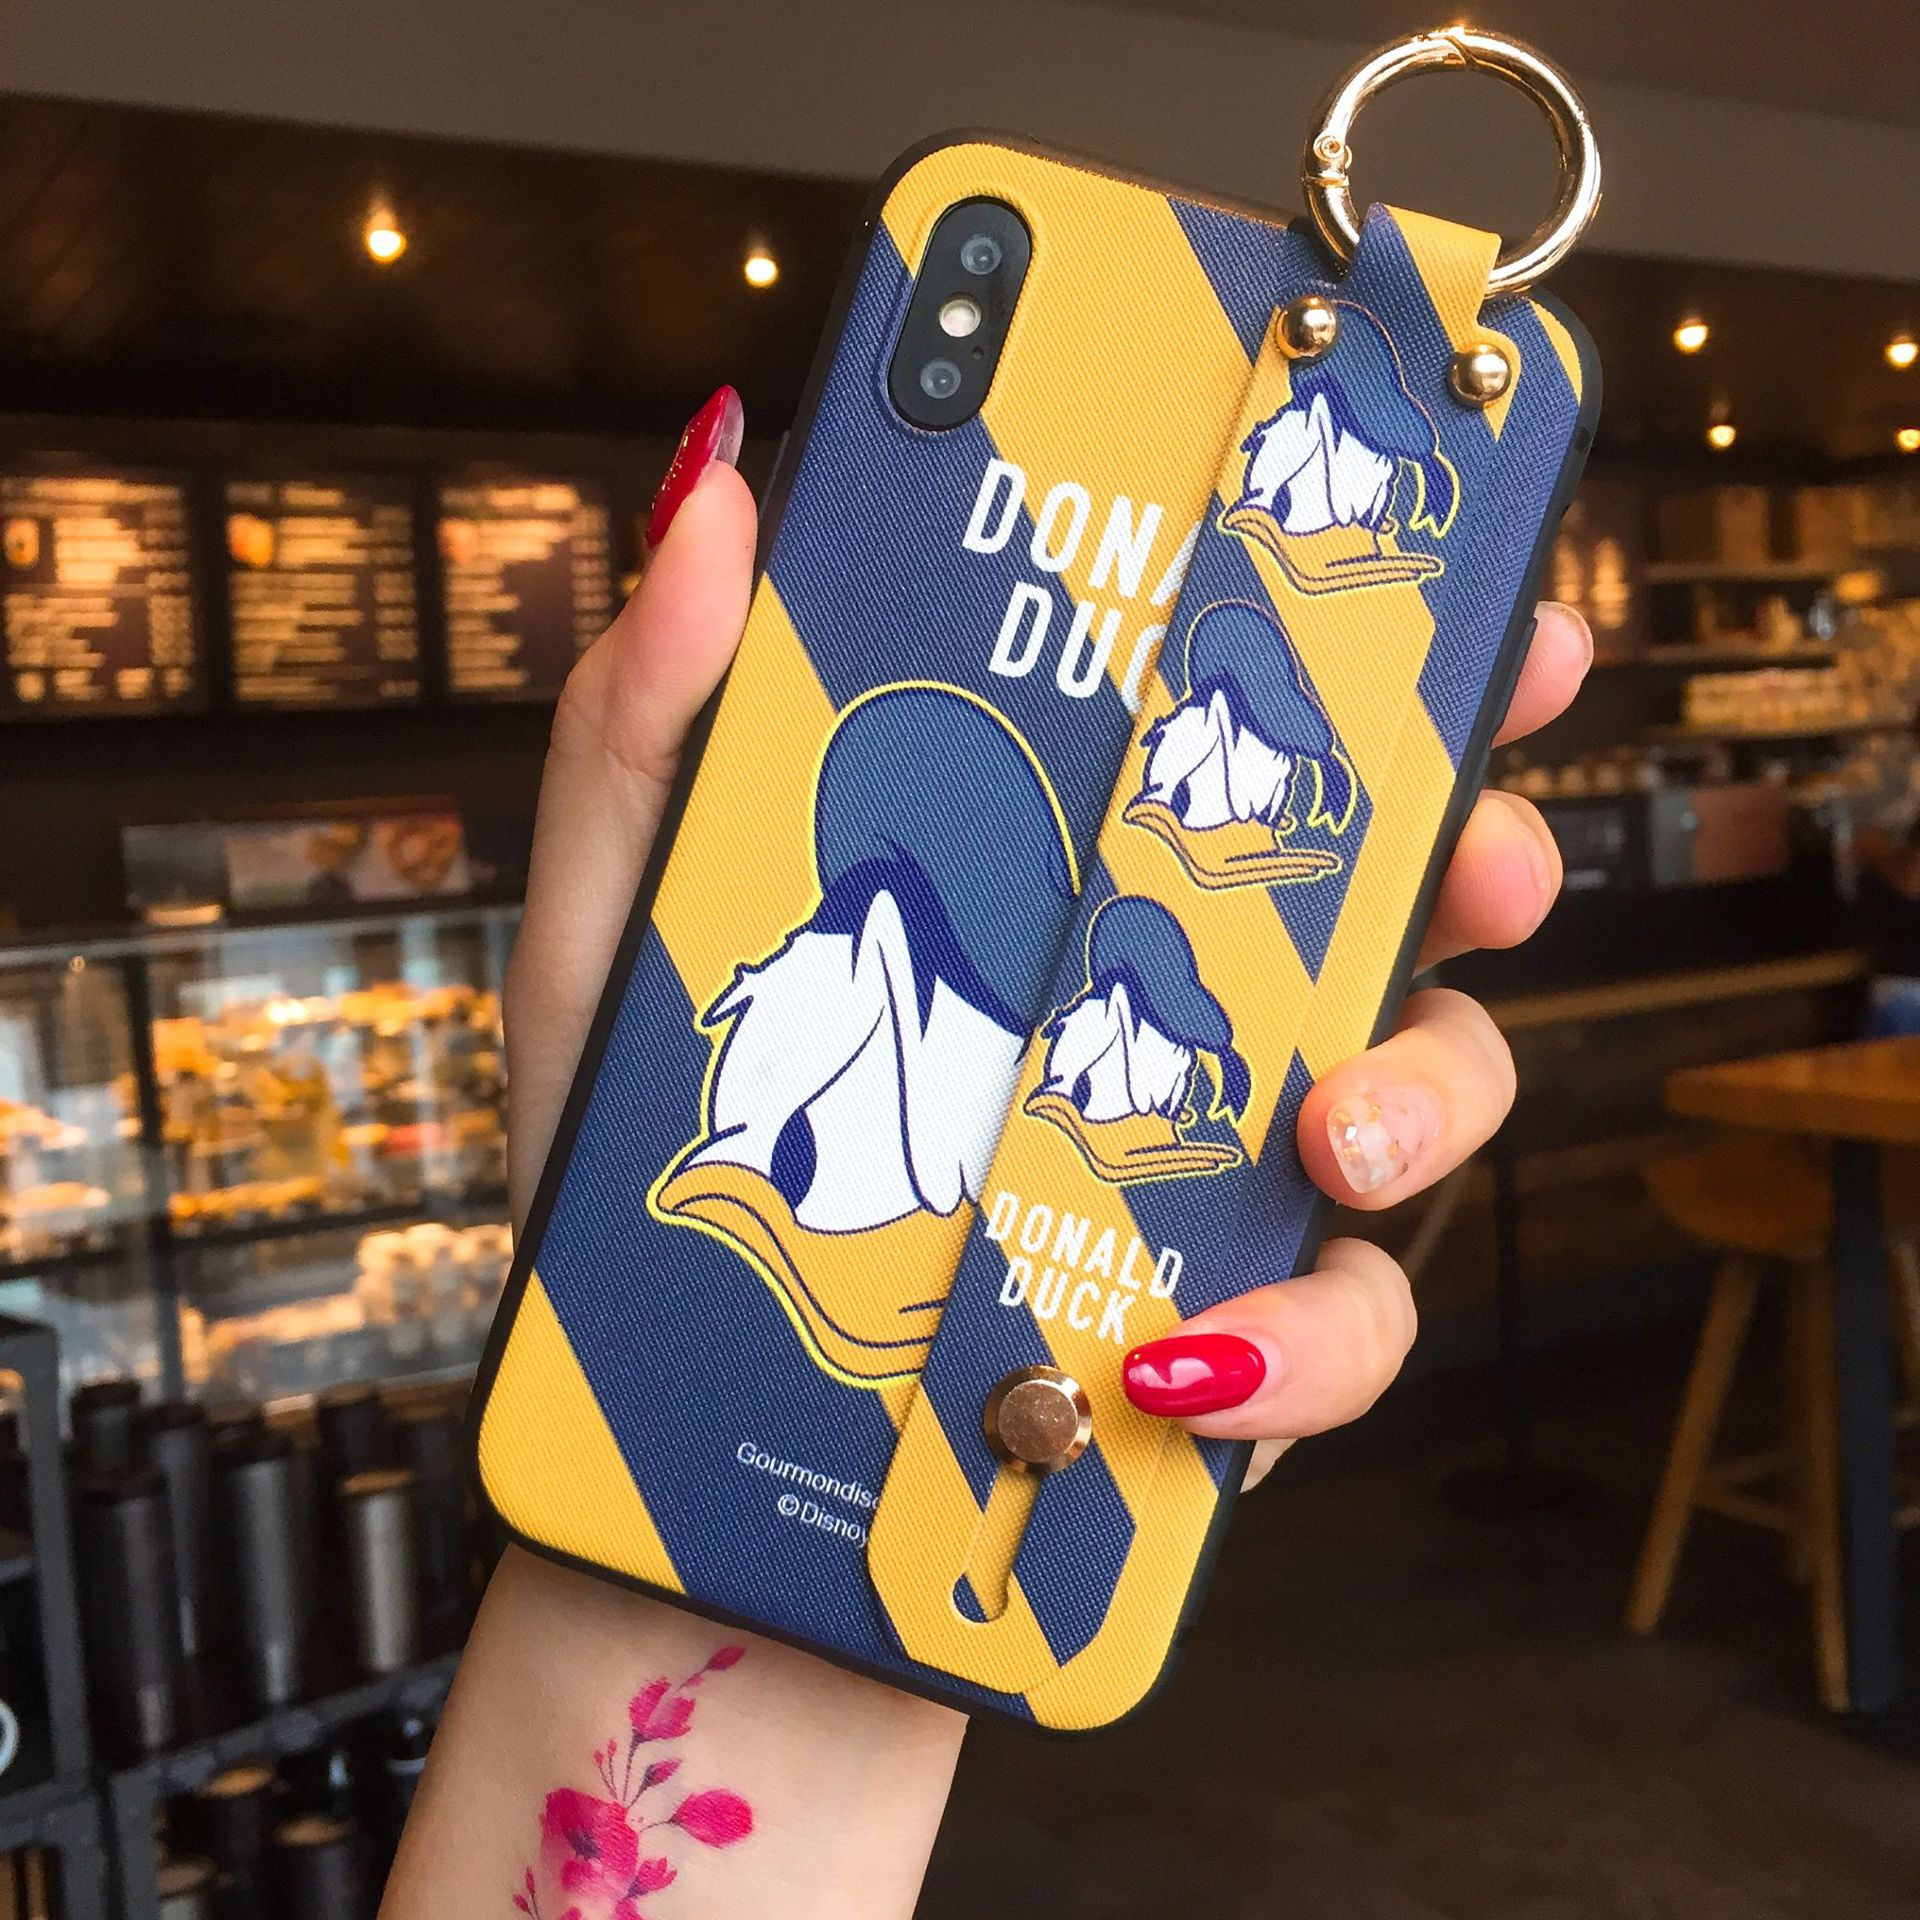 IRONGEER Cartoon Donald Duck Telefon Fall für <font><b>iPhone</b></font> 6S Plus 7 8 Plus weiche abdeckung für <font><b>iPhone</b></font> <font><b>X</b></font> XS MAX Armband Coque image